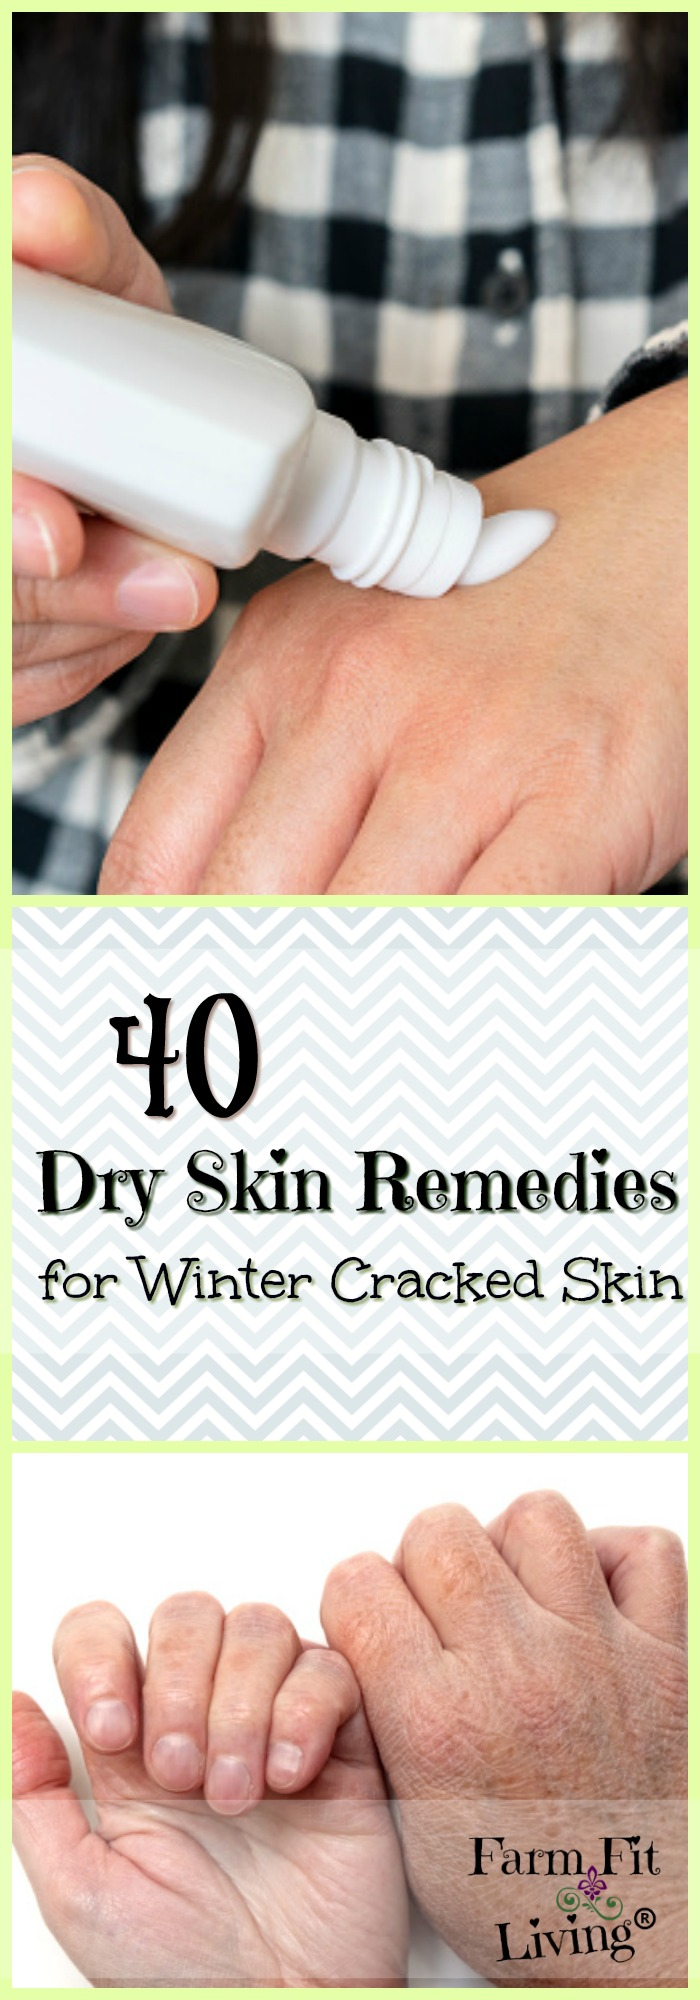 Are you looking for #dryskin remedies from the #winter cold? Here are 40 tried and true products for healing and treating winter dry skin.